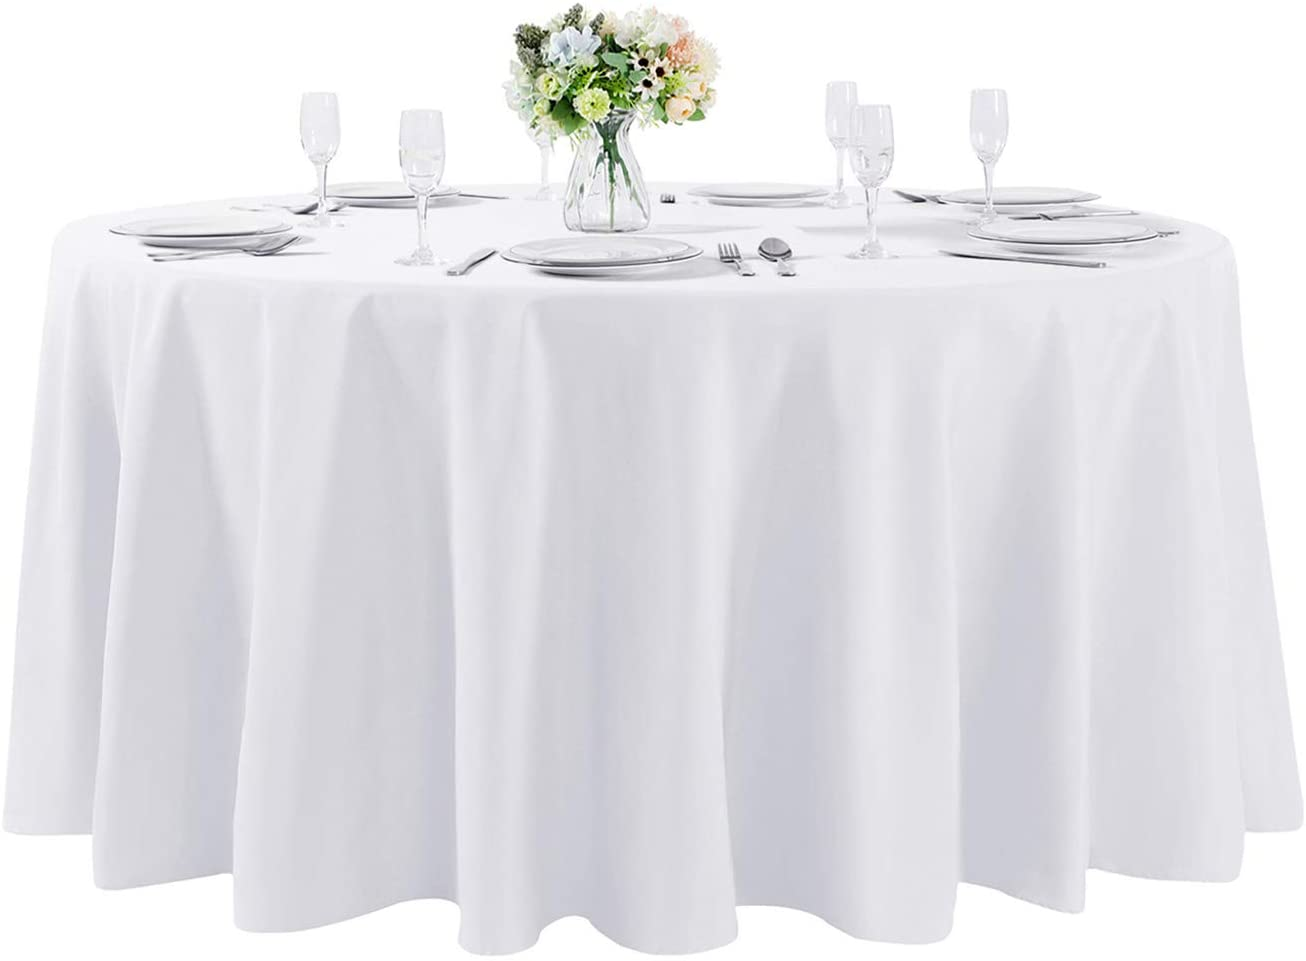 108 inch Round Tablecloth Washable Table Decorat Polyester Cloth Ranking TOP16 Free shipping on posting reviews